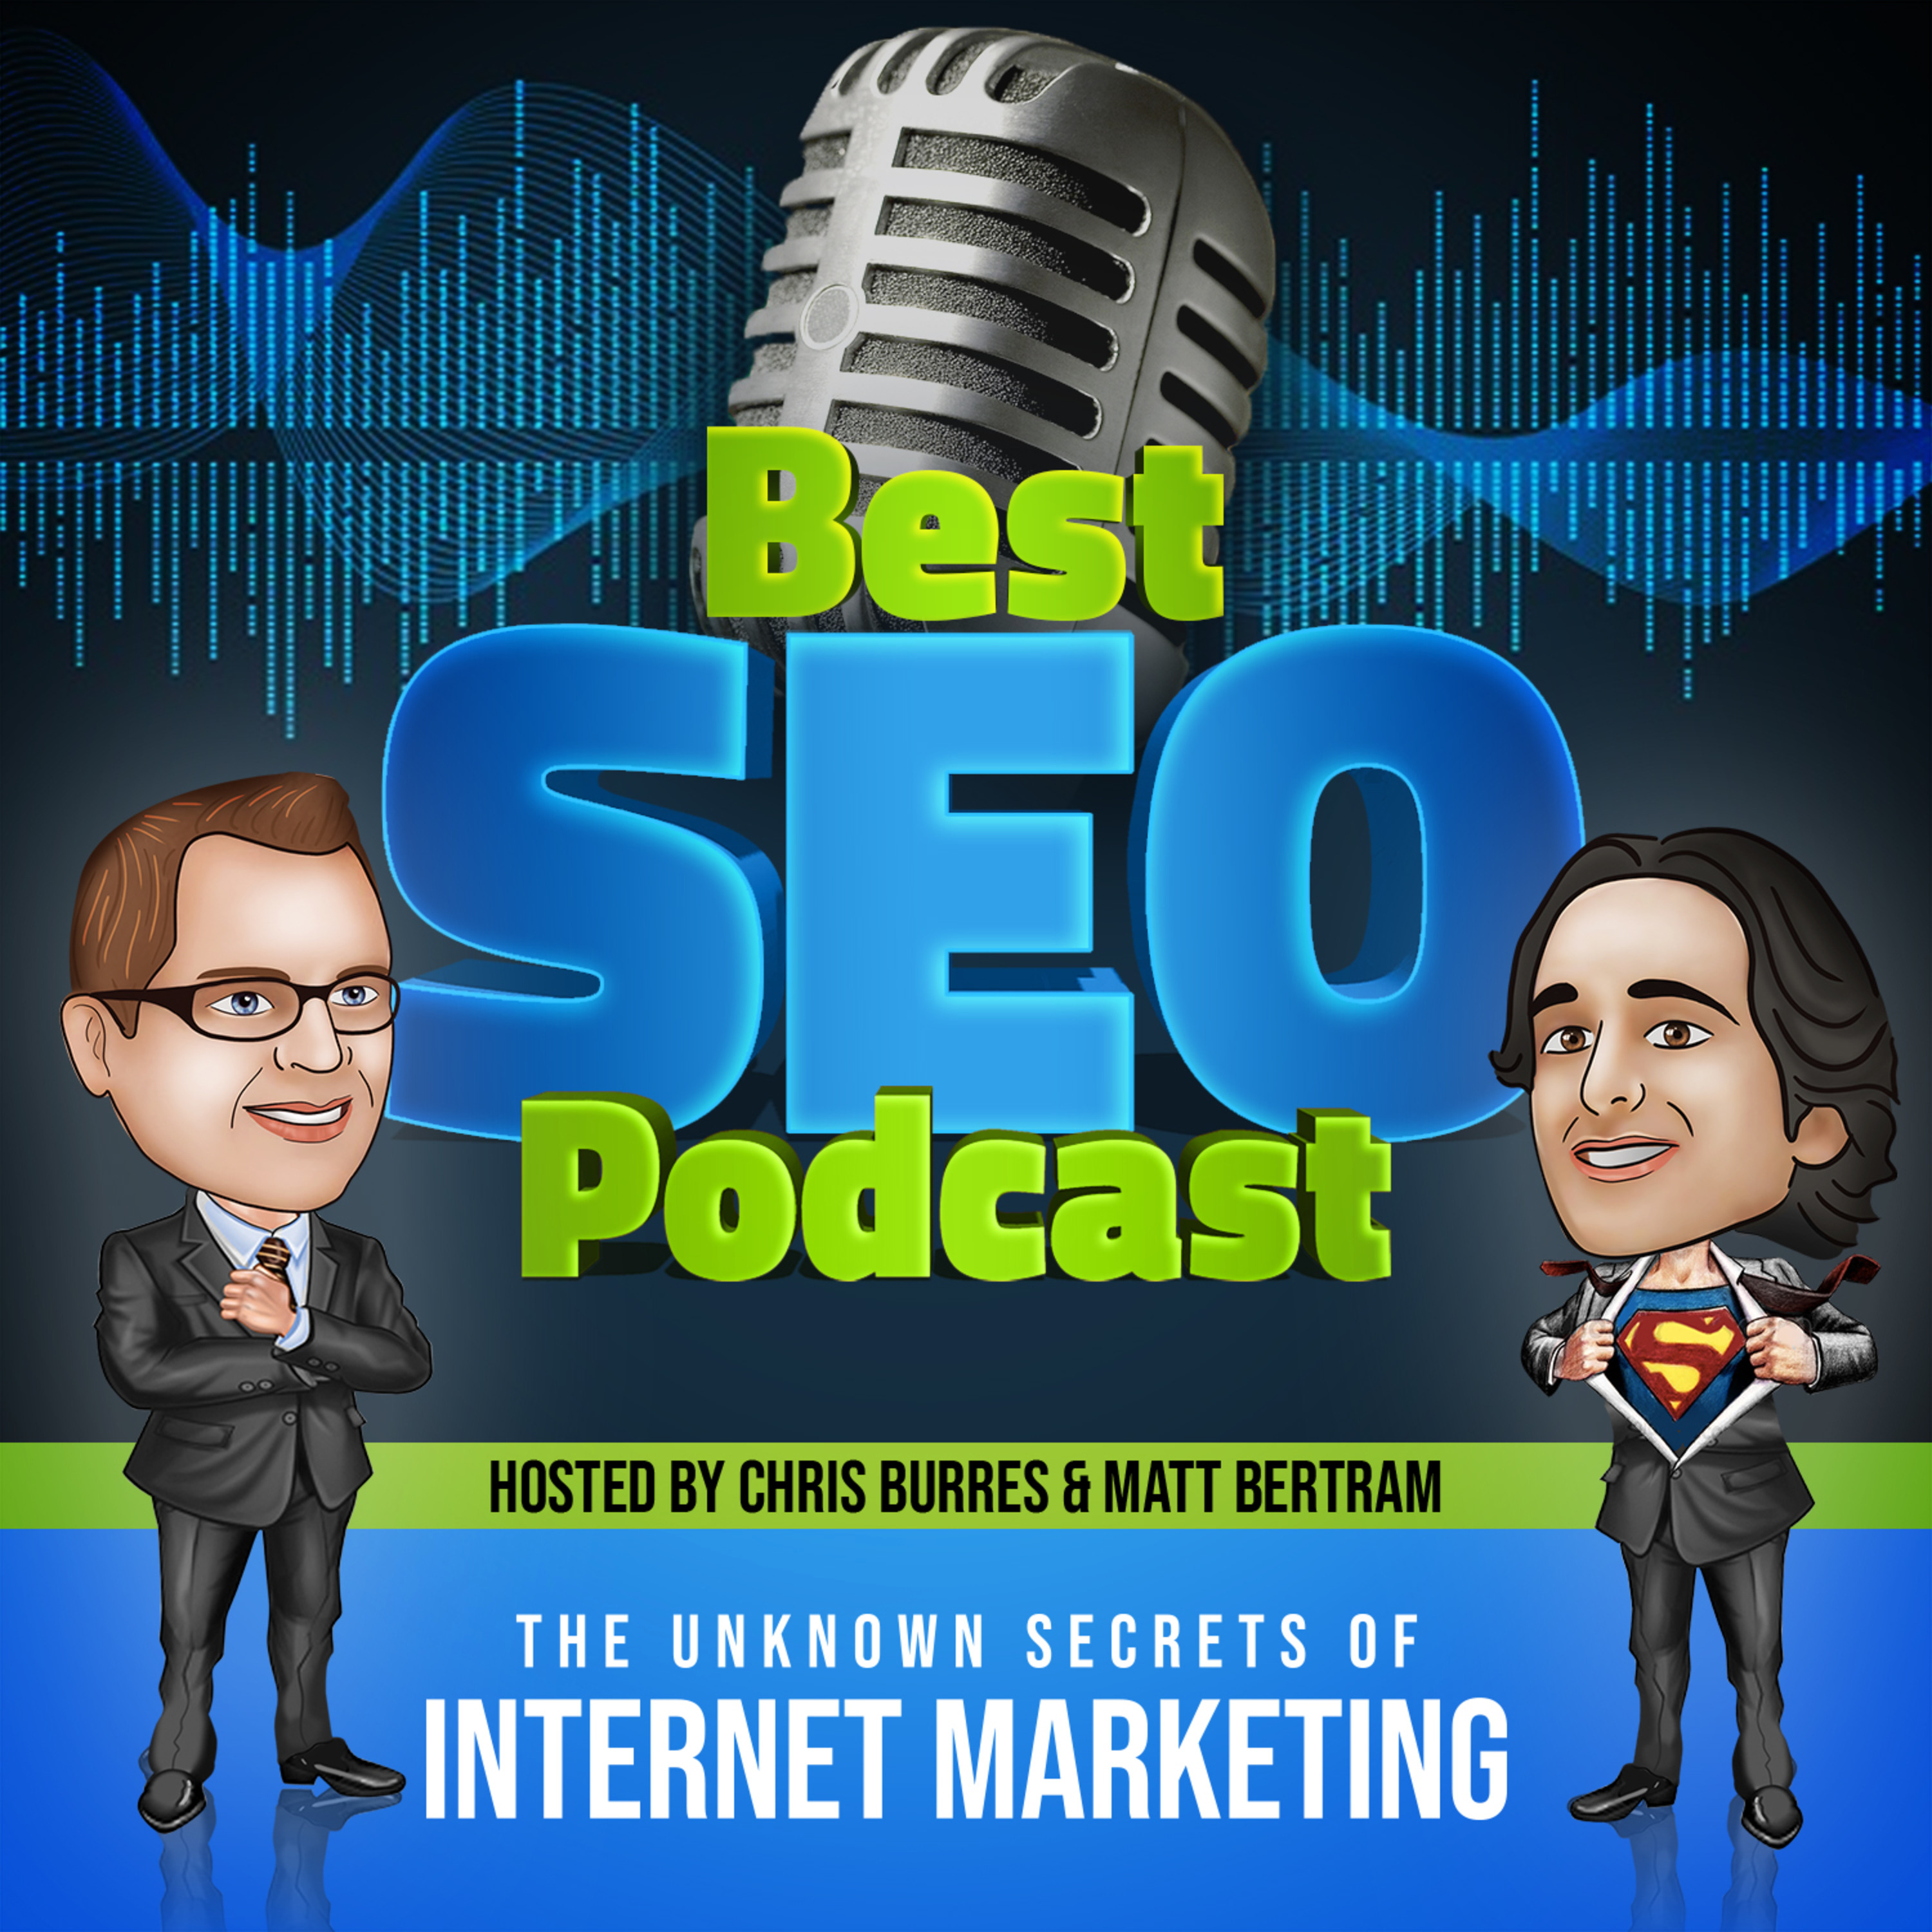 Episode 510: How to Maximize Your Traditional Marketing Budgets with Digital Spend   #510